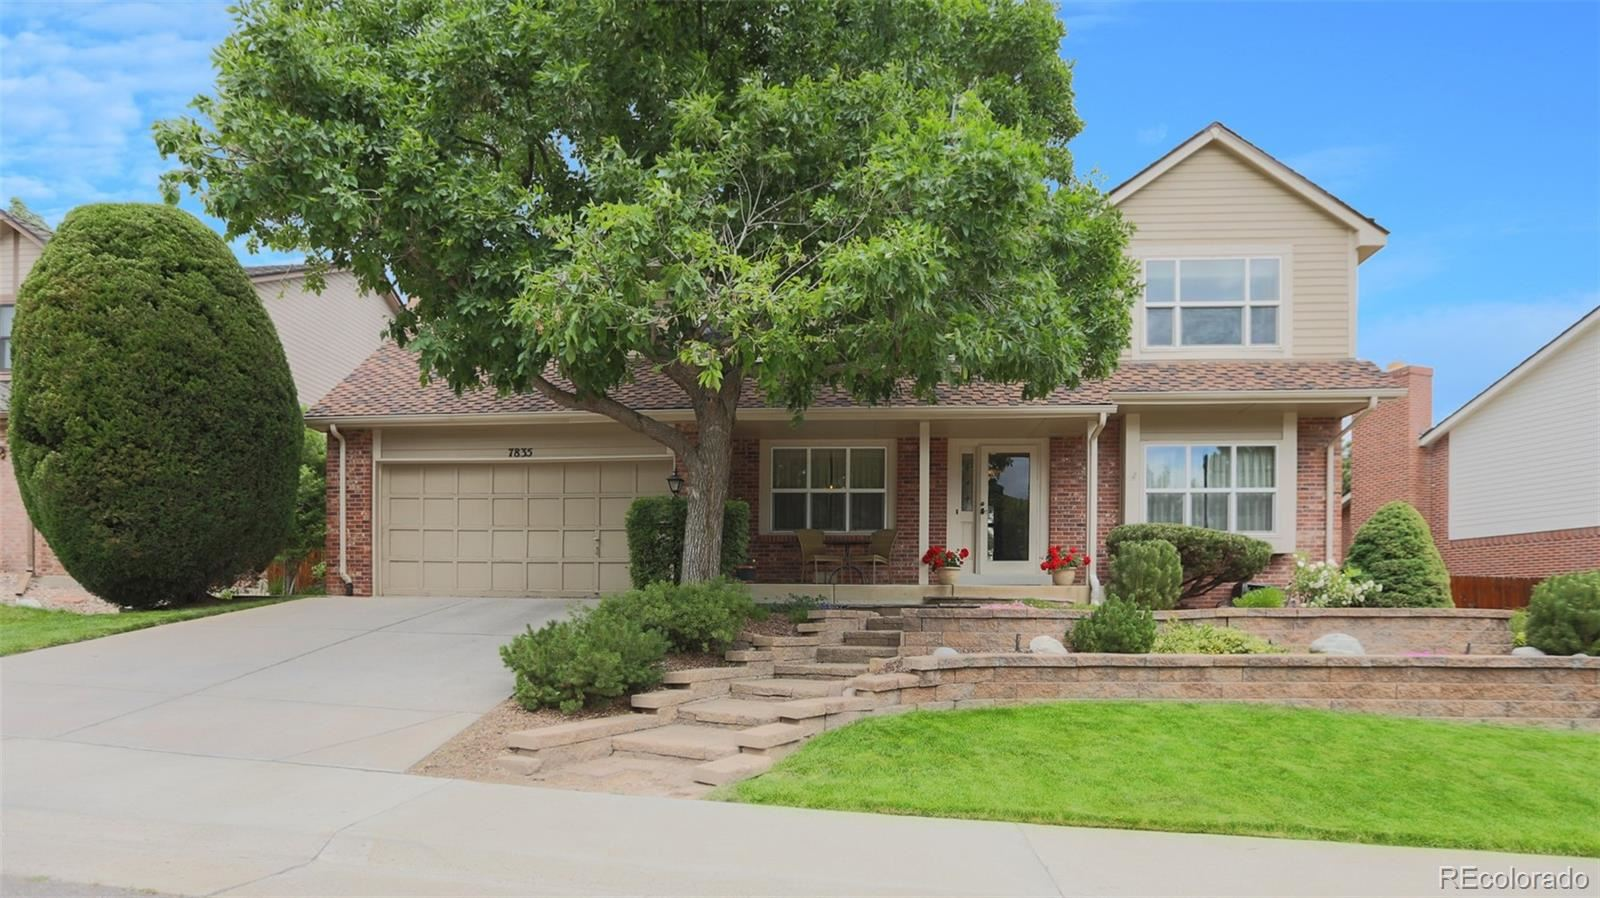 7835  Silverweed Way, Lone Tree, CO 80124 - #: 9801699